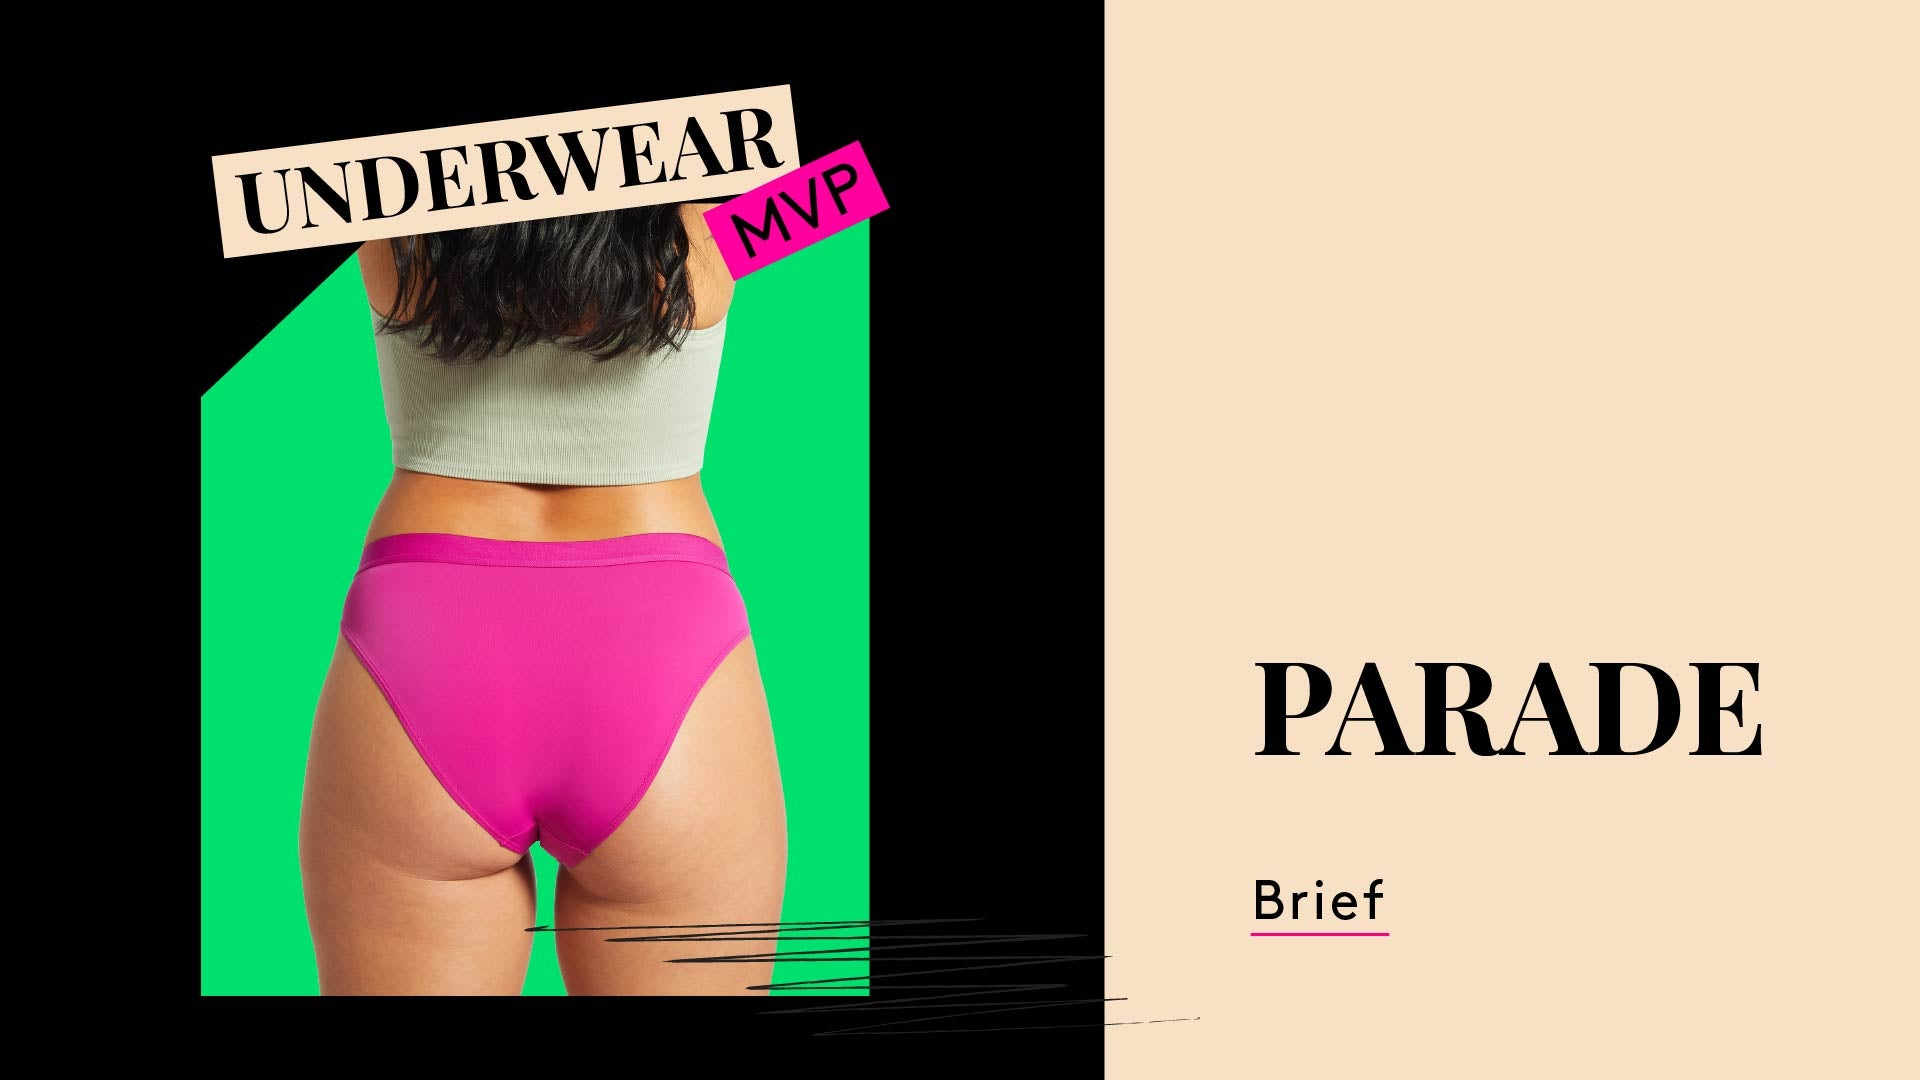 Underwear MVP. This is a photo of a woman wearing Parade Cheeky underwear brief.